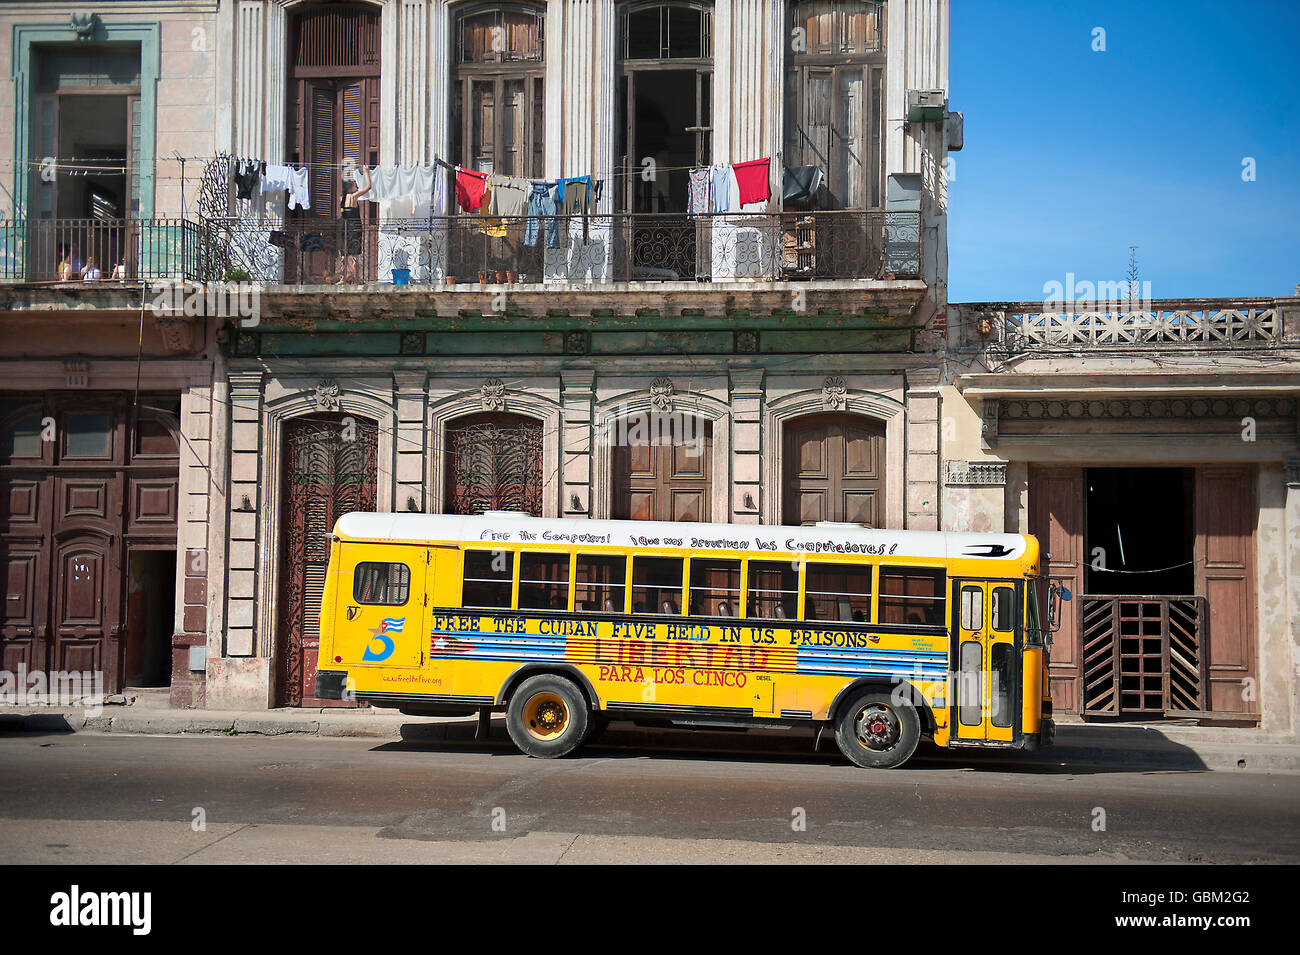 yellow school bus under clothesline with clothes hanging to dry - Stock Image